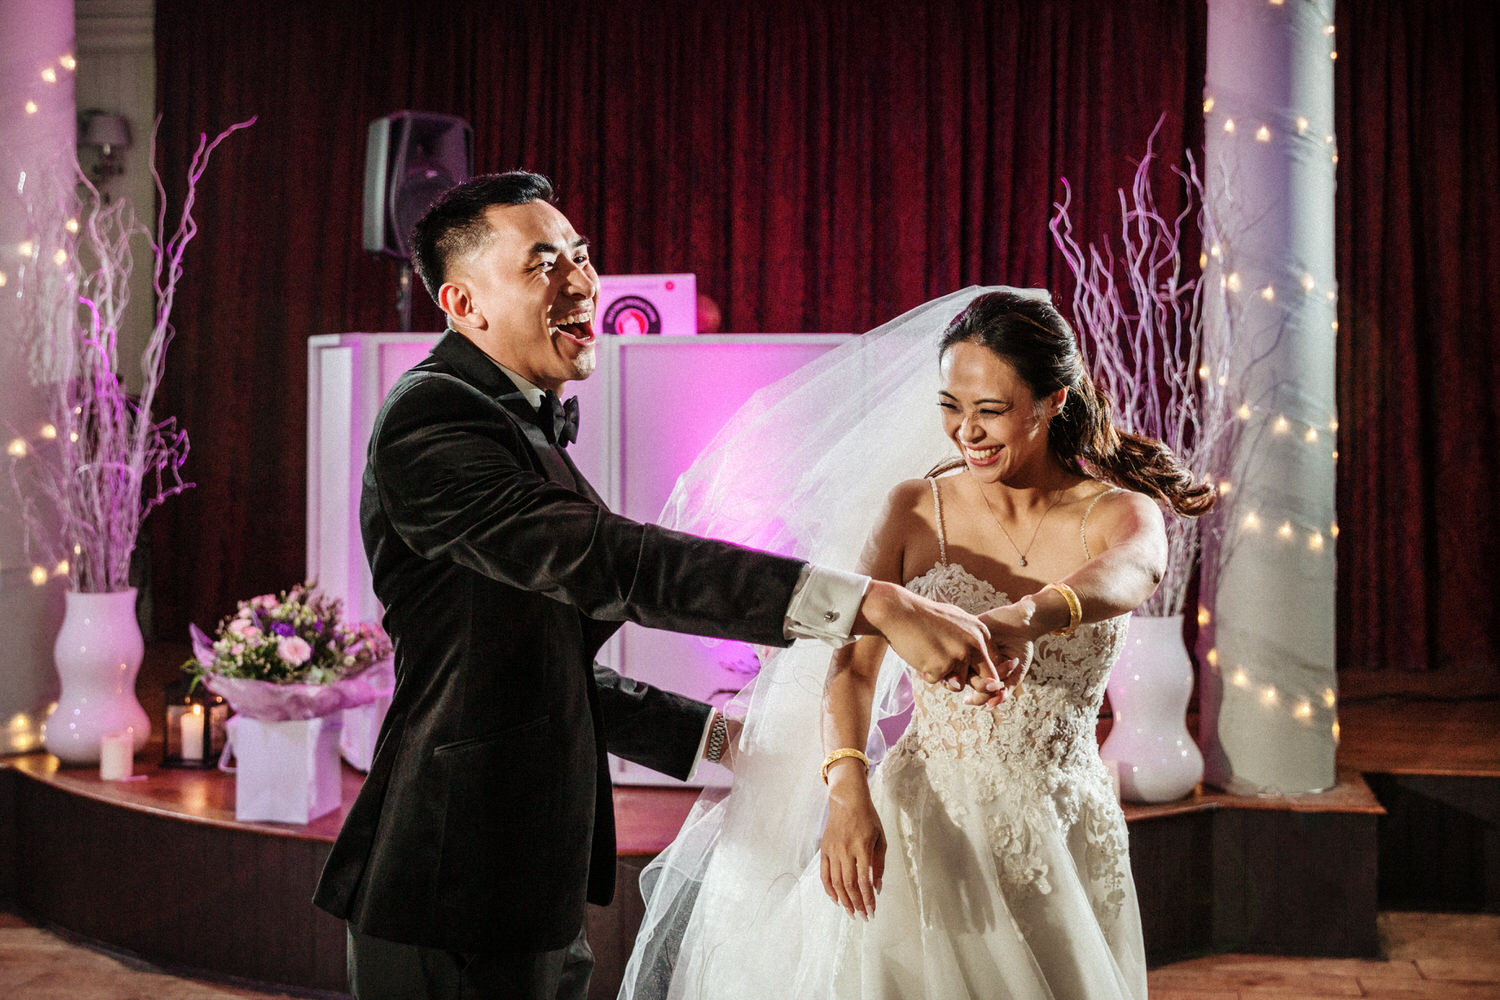 The bride and groom have fun during the first dance